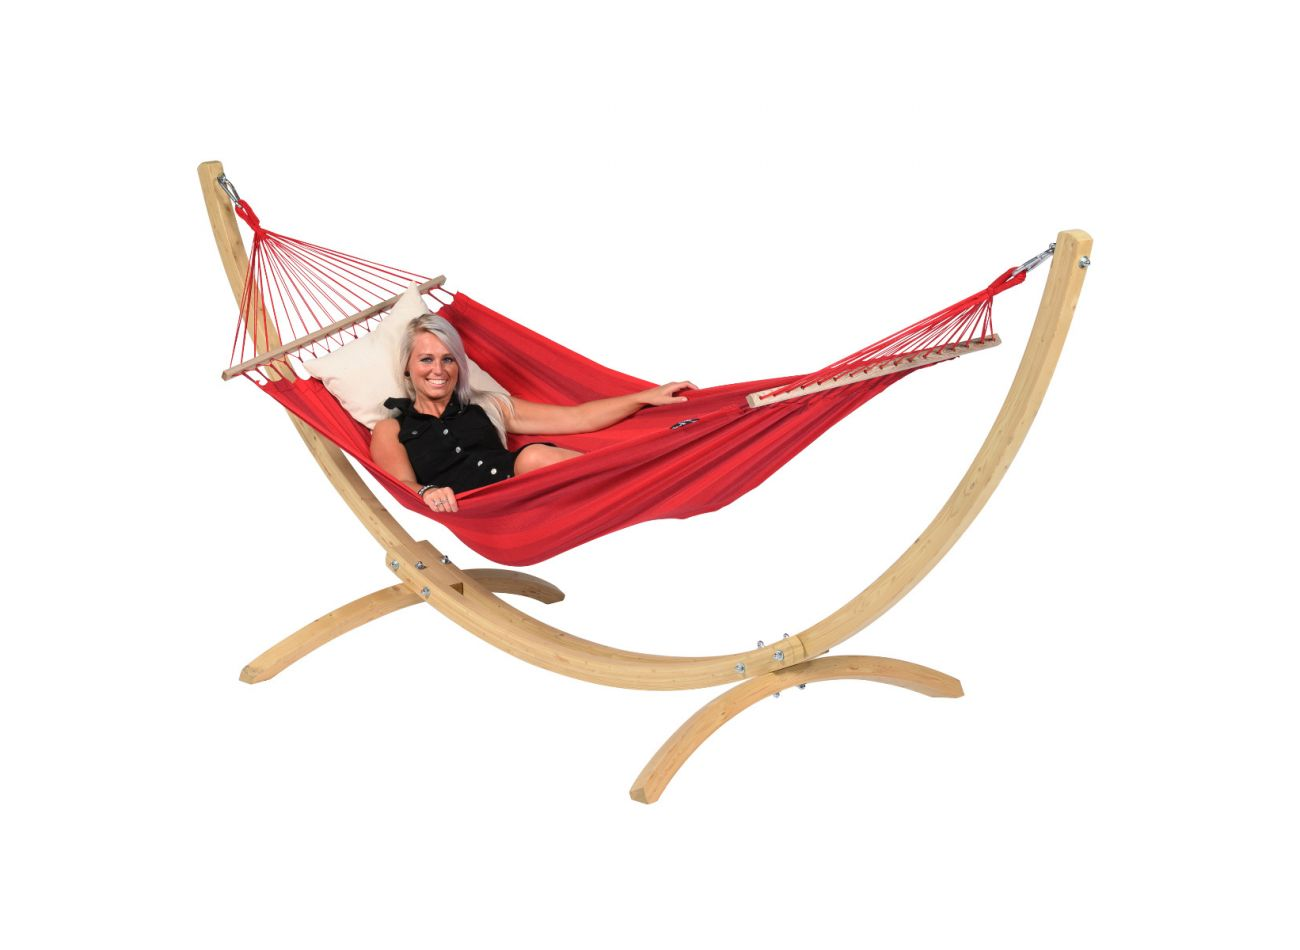 Hamac Sur Pied 1 Personne Wood & Relax Red